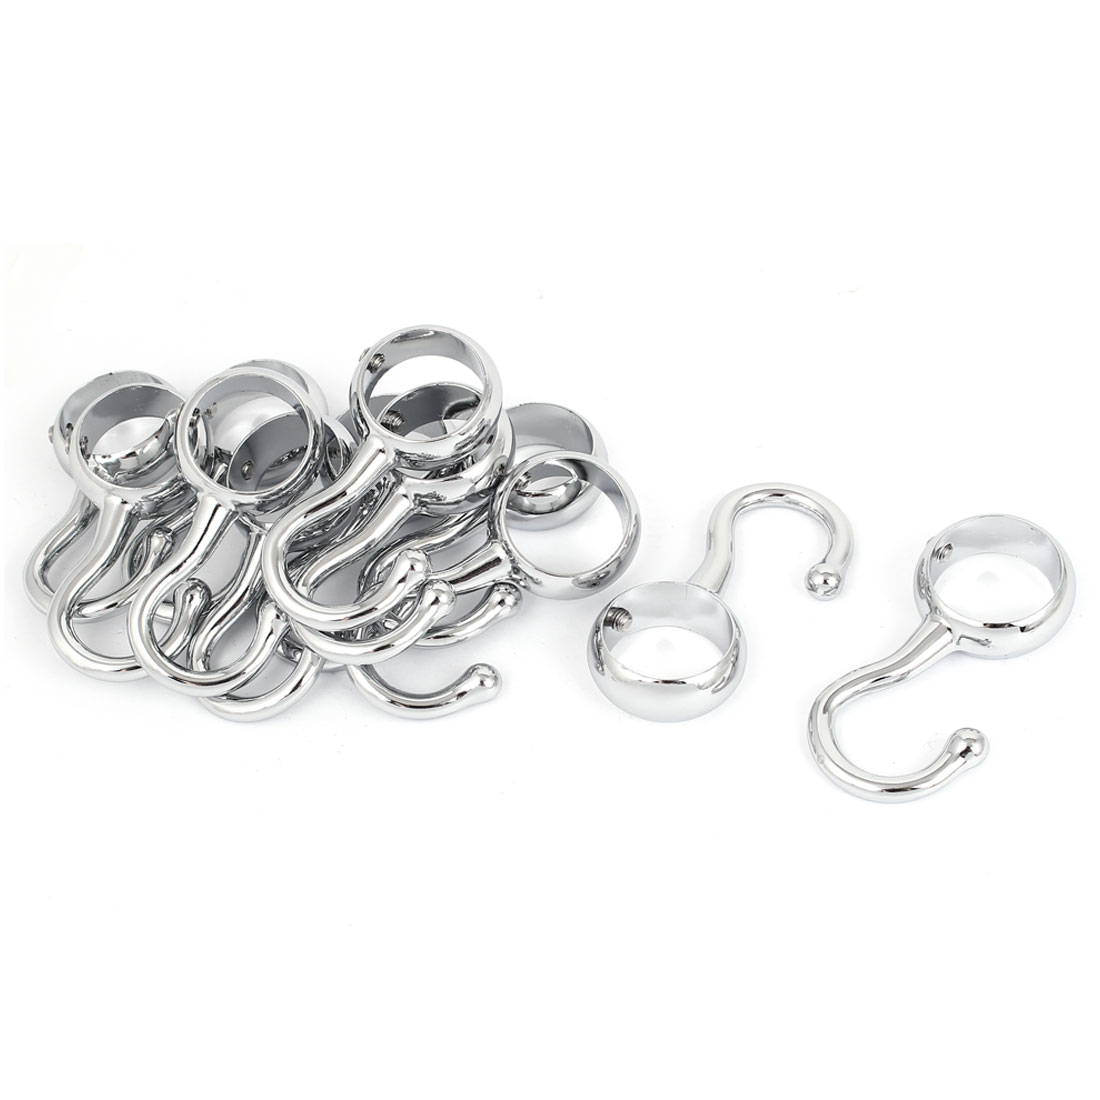 25mm Diameter Pipe Clothes Lever Bracket Support Hooks 12 Pcs